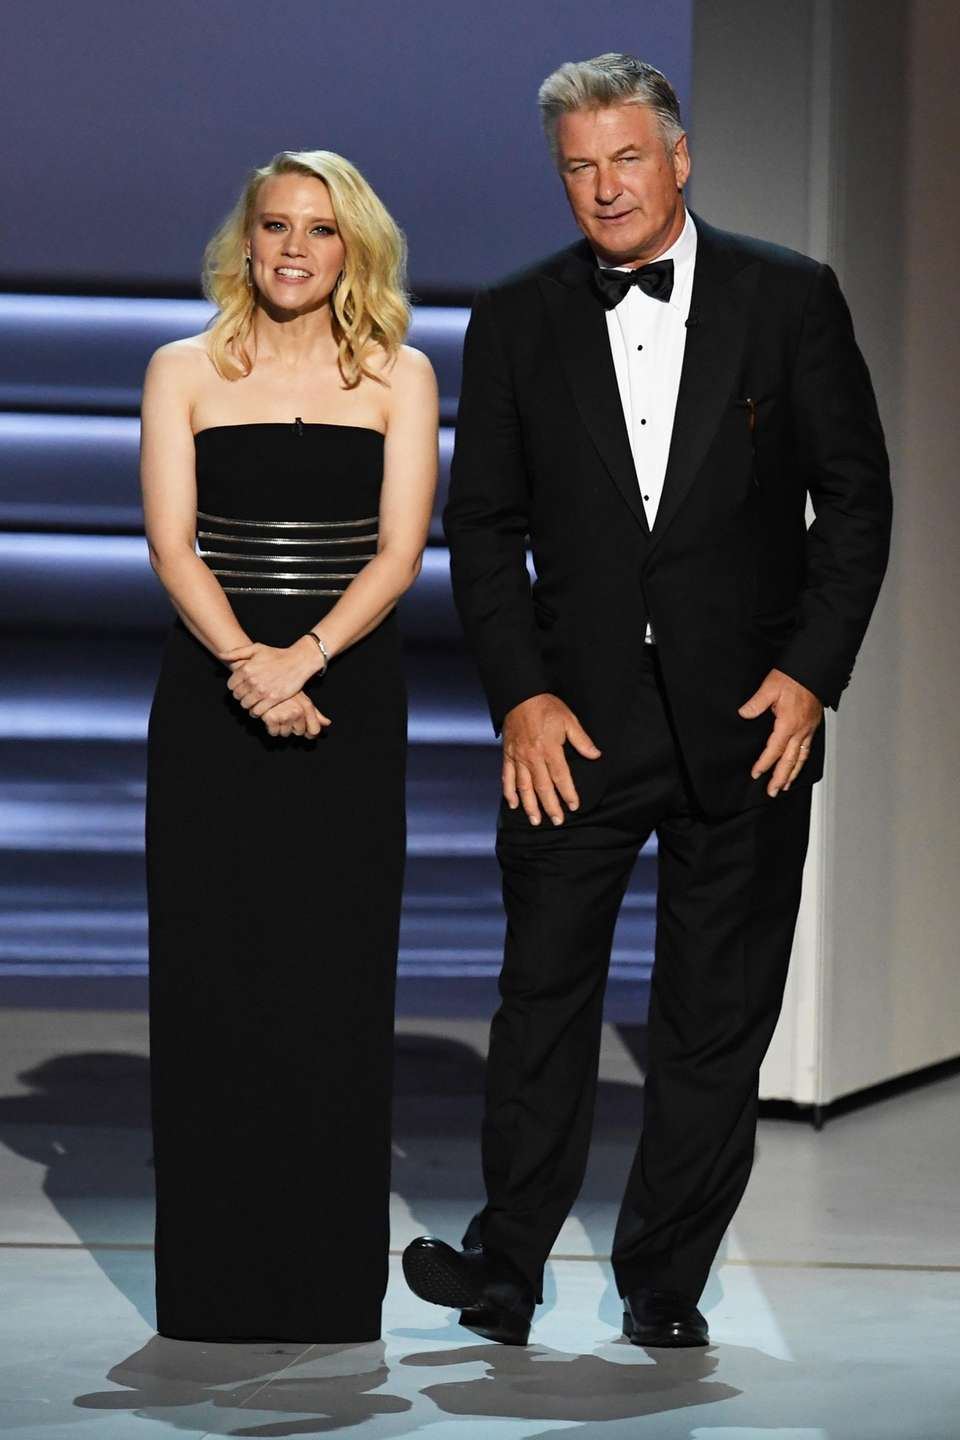 Long Islanders Kate McKinnon and Alec Baldwin introduce